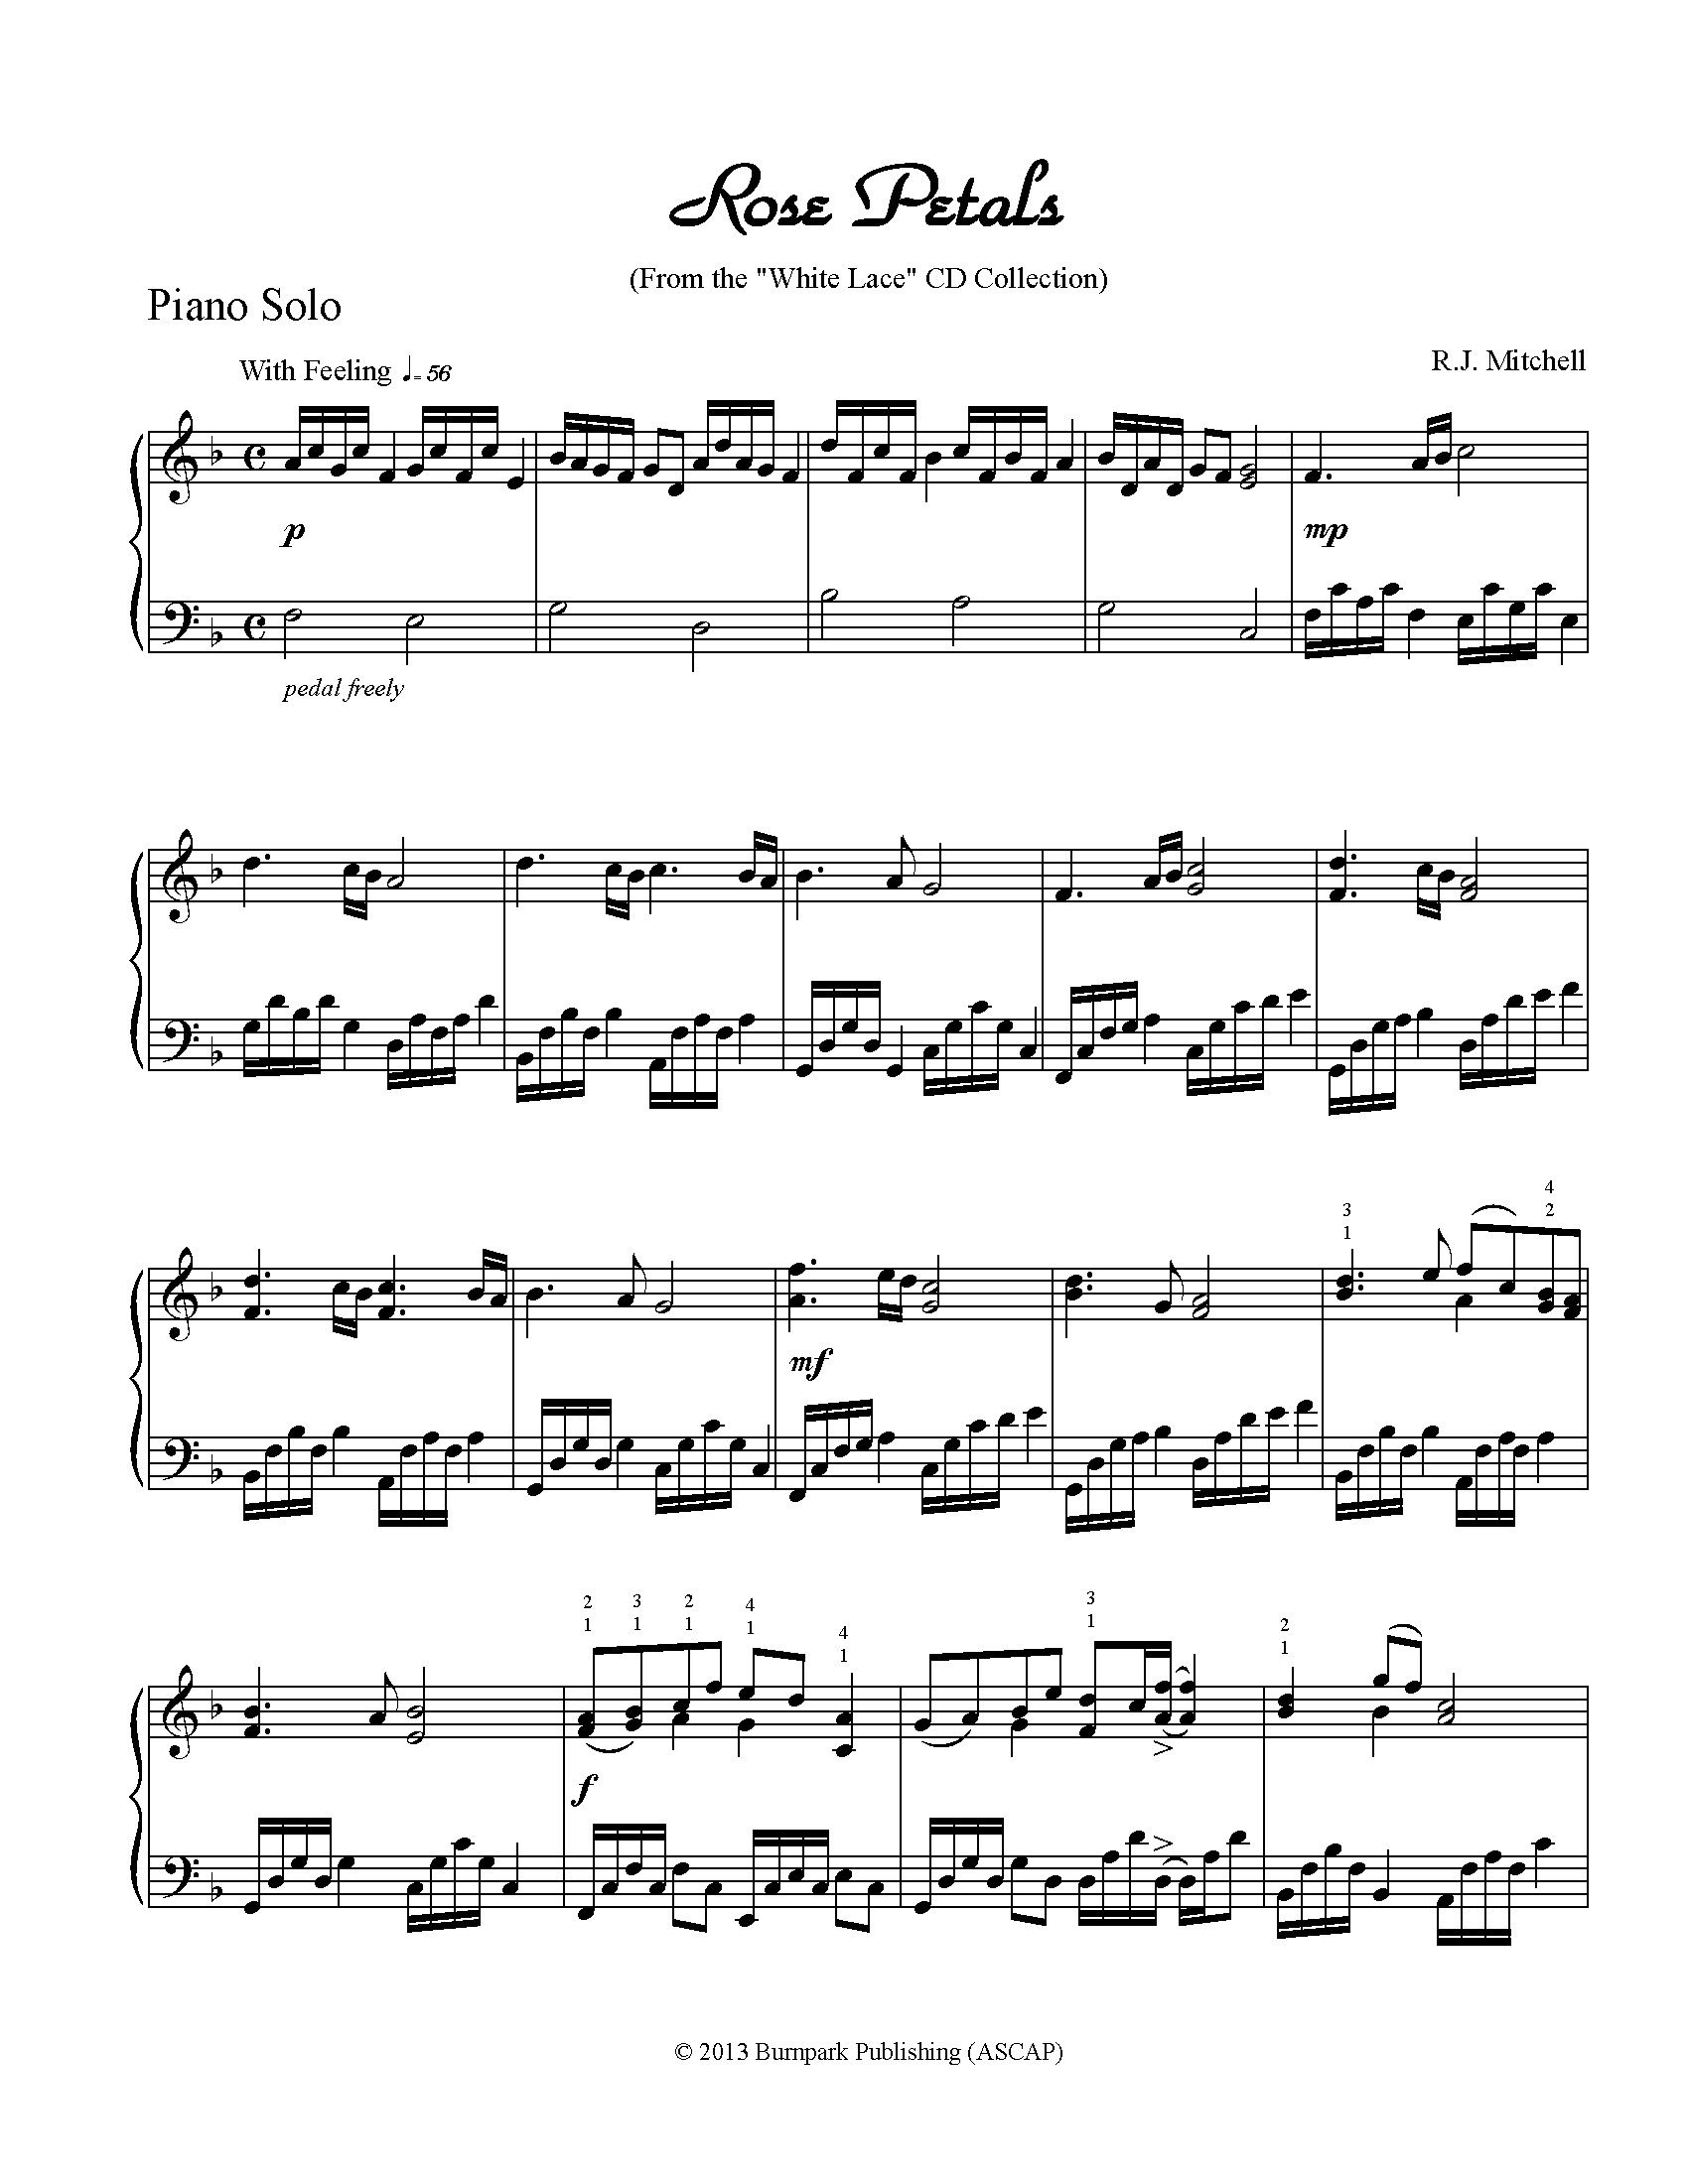 Rose Petals From The White Lace New Classical Wedding Music CD Is A Perfect Processional For Bride Or Bridal Party And